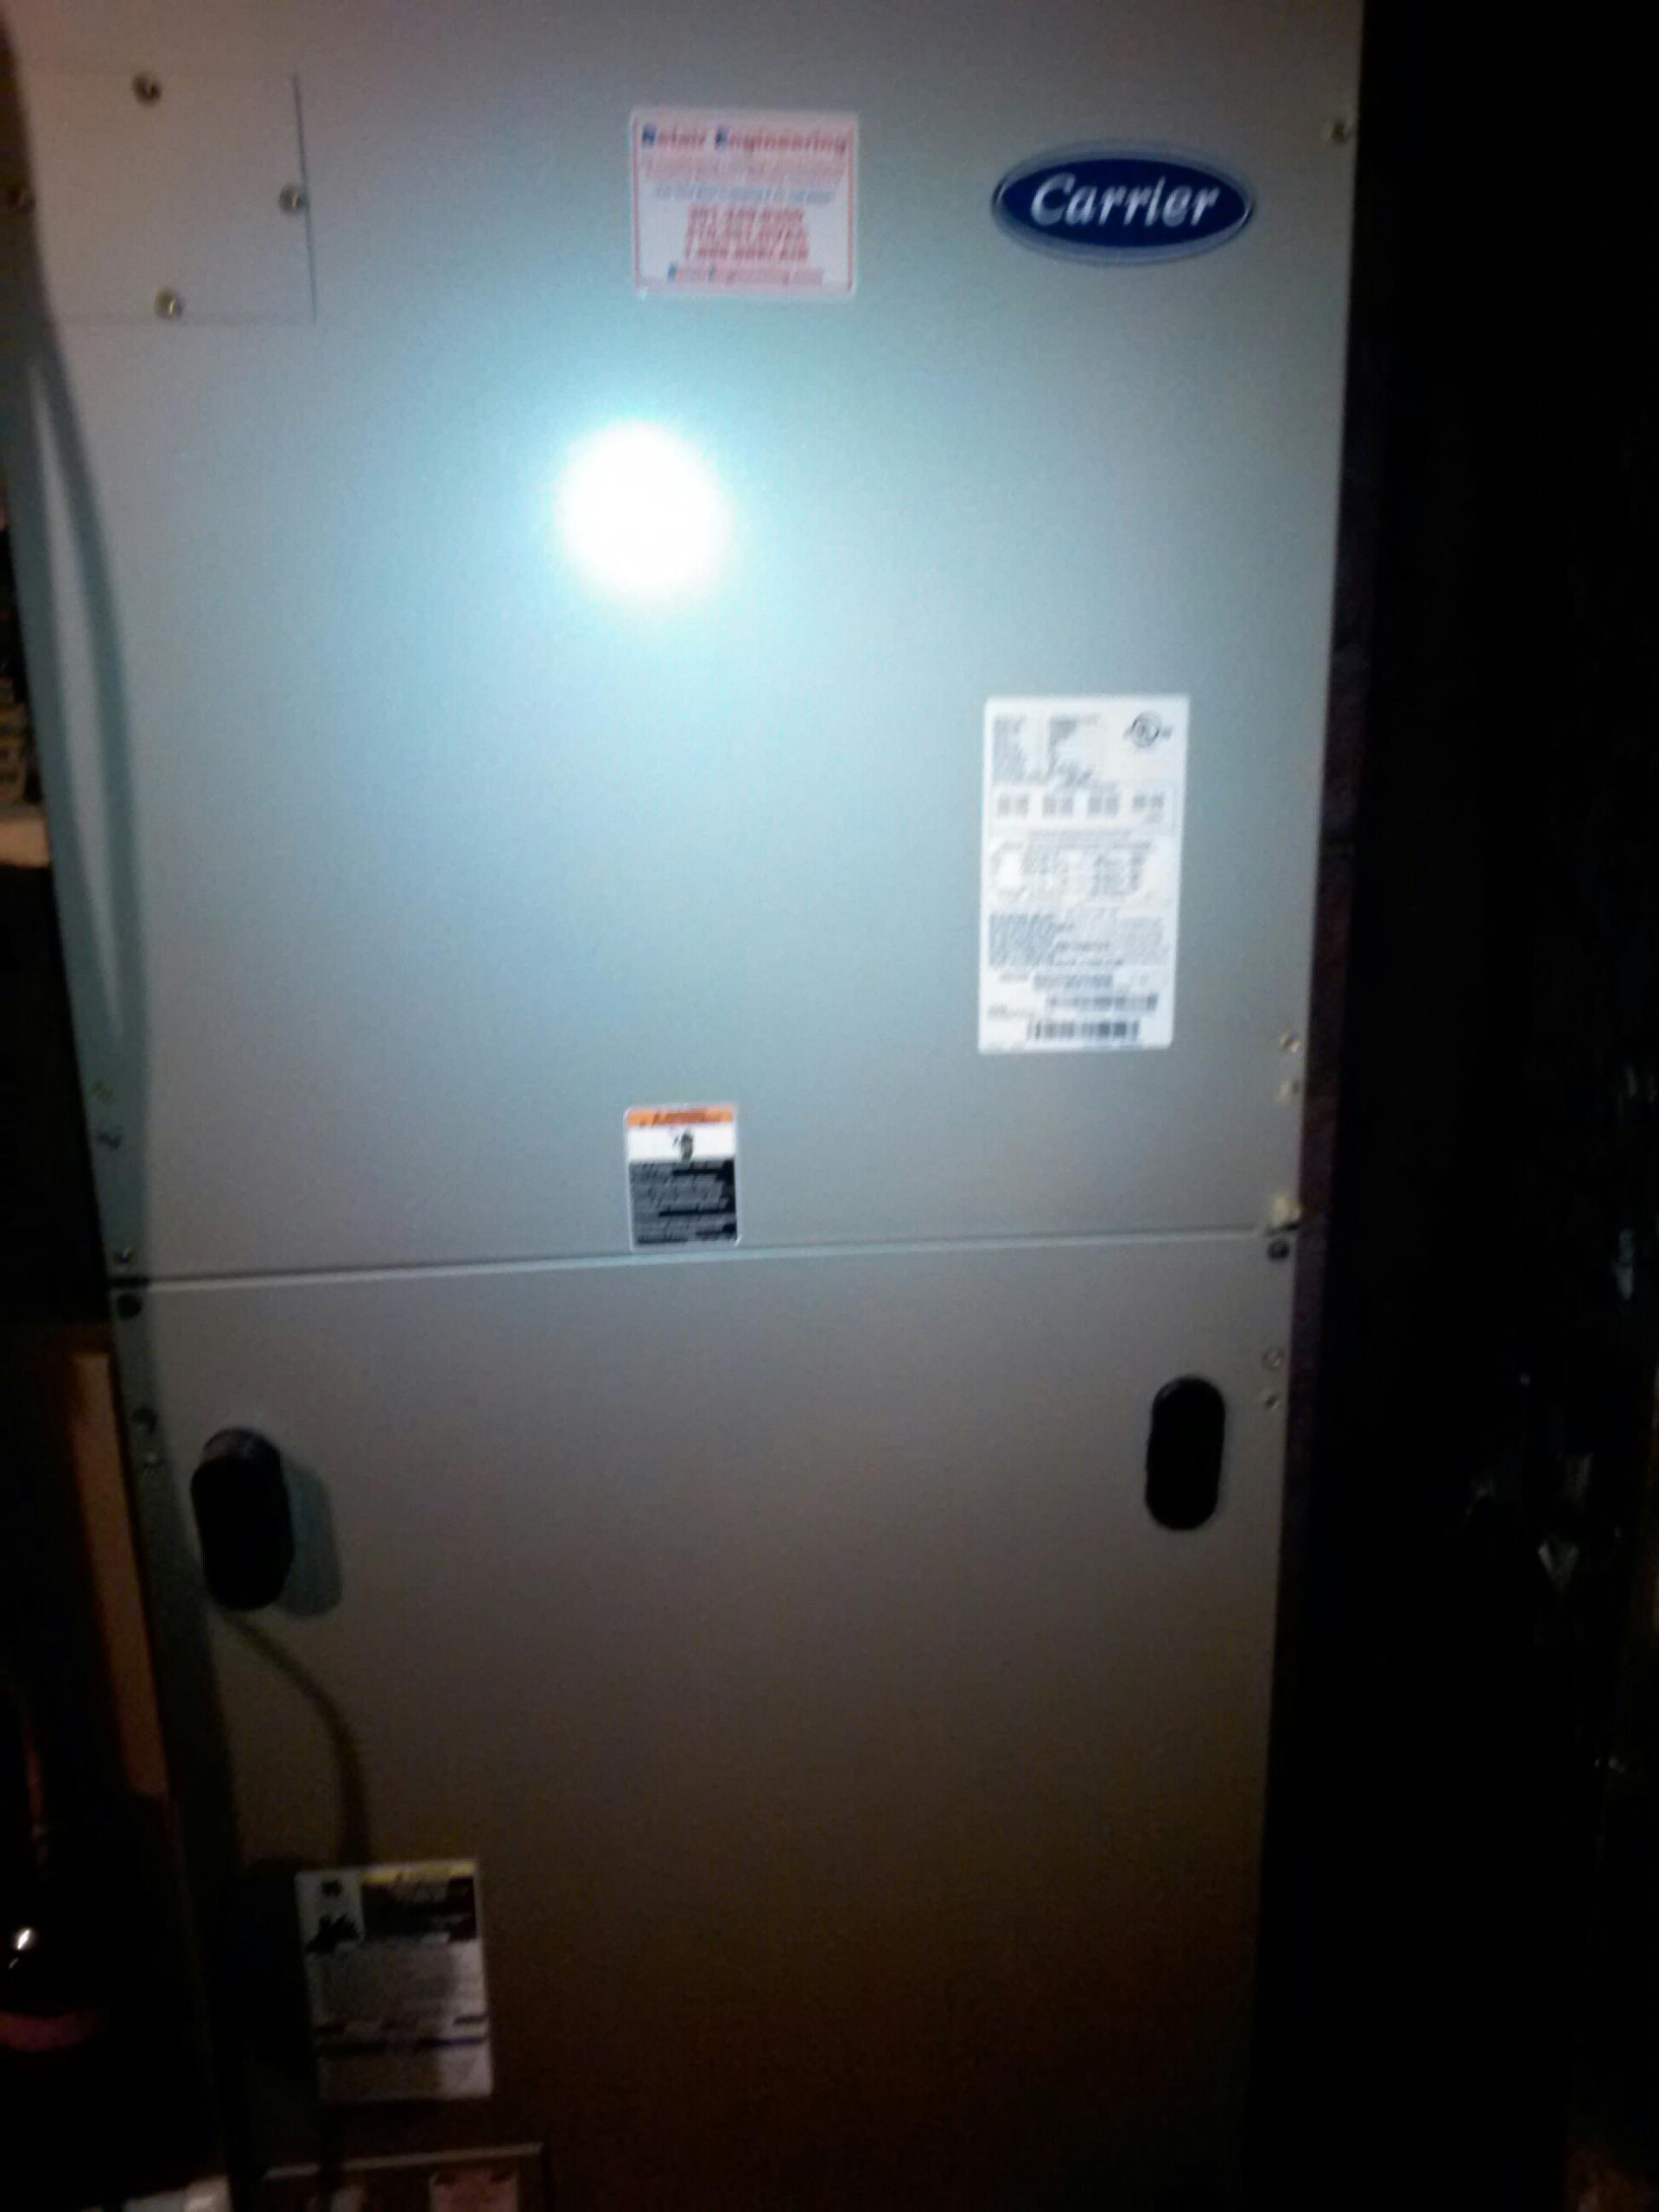 Crofton, MD - Carrier heat pump heating & AC system, Pulse humidifier & Aprilaire electronic air cleaner replacement installation service call in Crofton Maryland 21114